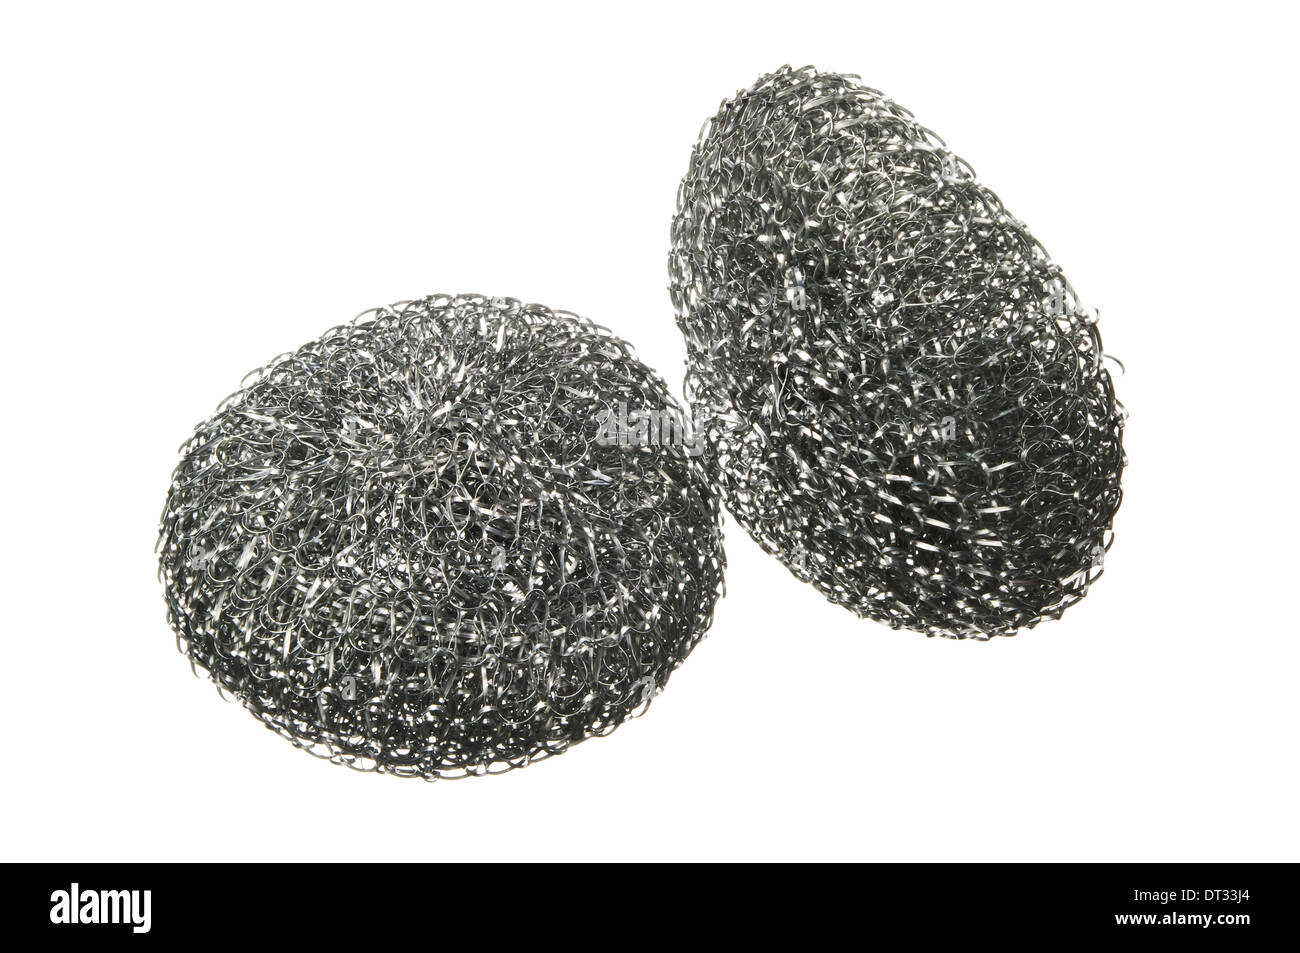 Two metal sponge for ware washing isolated on a white background - Stock Image